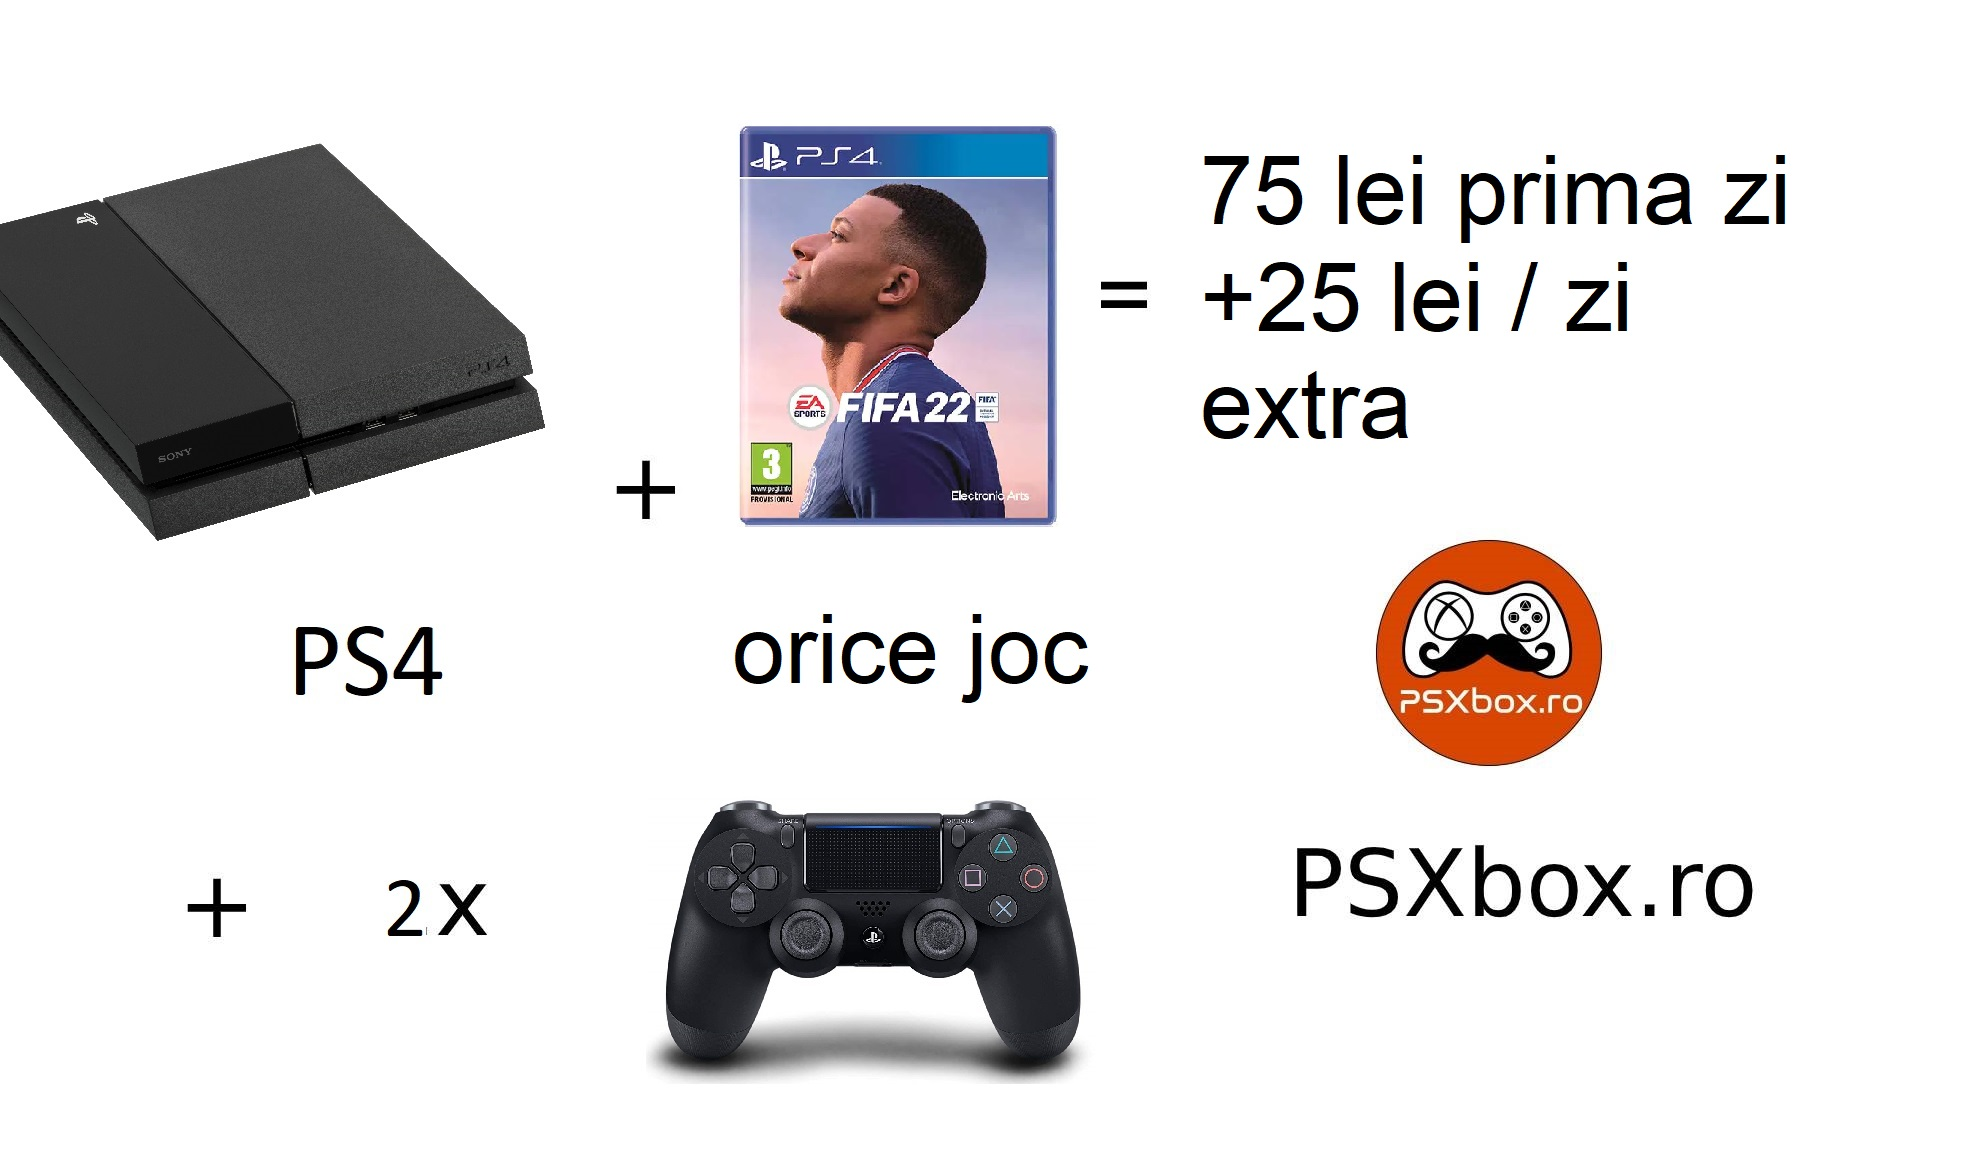 Pachet Inchiriere Fifa 21 PS4 PSXbox, inchiriere console jocuri video PlayStation 4 & Xbox one Pitesti - Arges